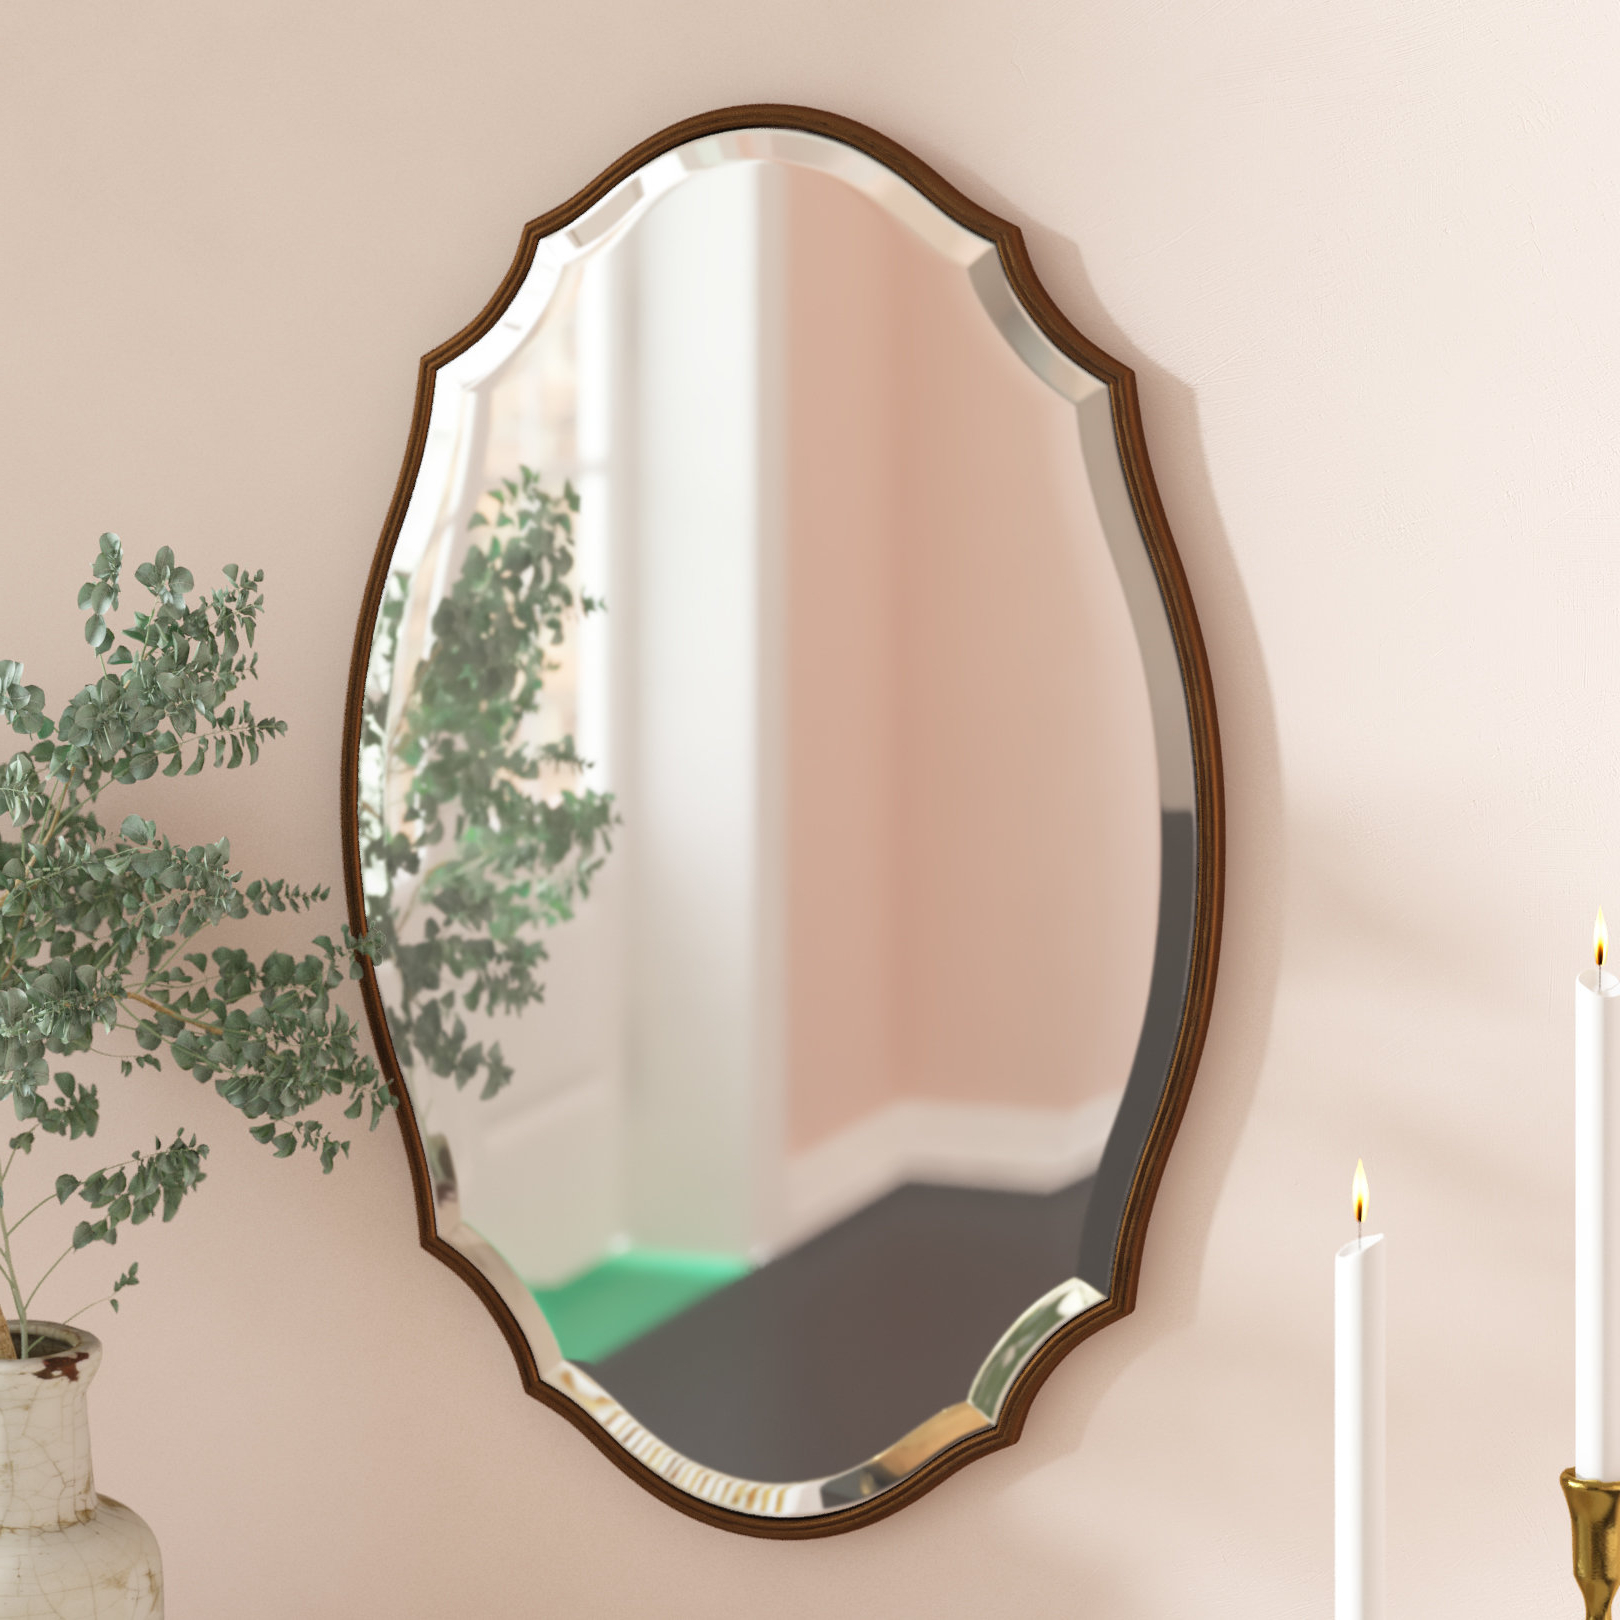 Guidinha Modern & Contemporary Accent Mirrors Regarding Newest Modern & Contemporary Beveled Accent Mirror (View 4 of 20)